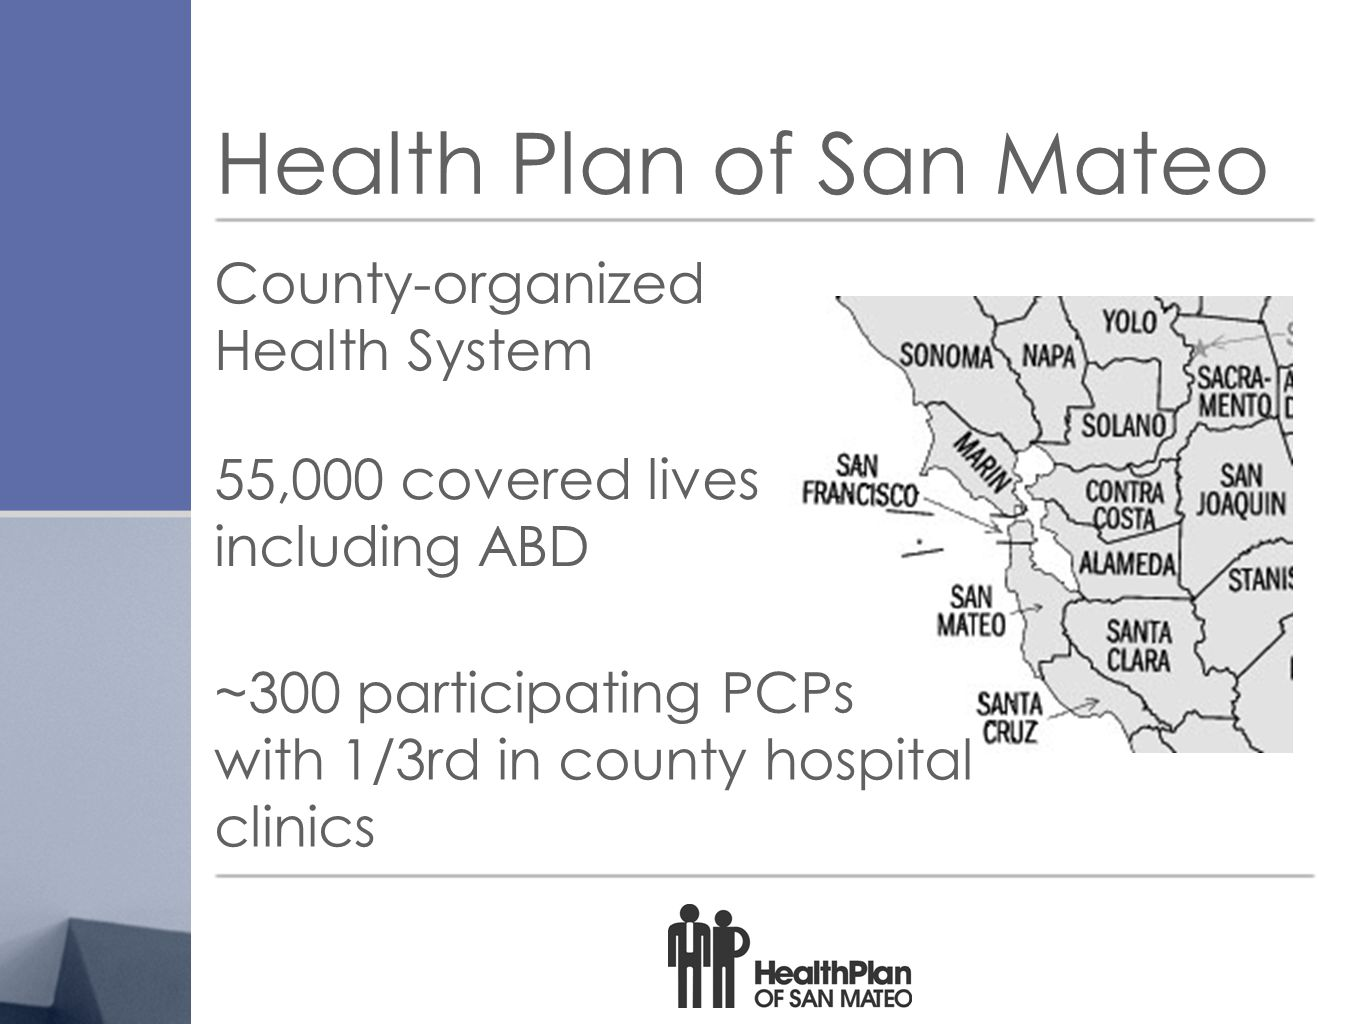 Health Plan of San Mateo County-organized Health System 55,000 covered lives including ABD ~300 participating PCPs with 1/3rd in county hospital clinics